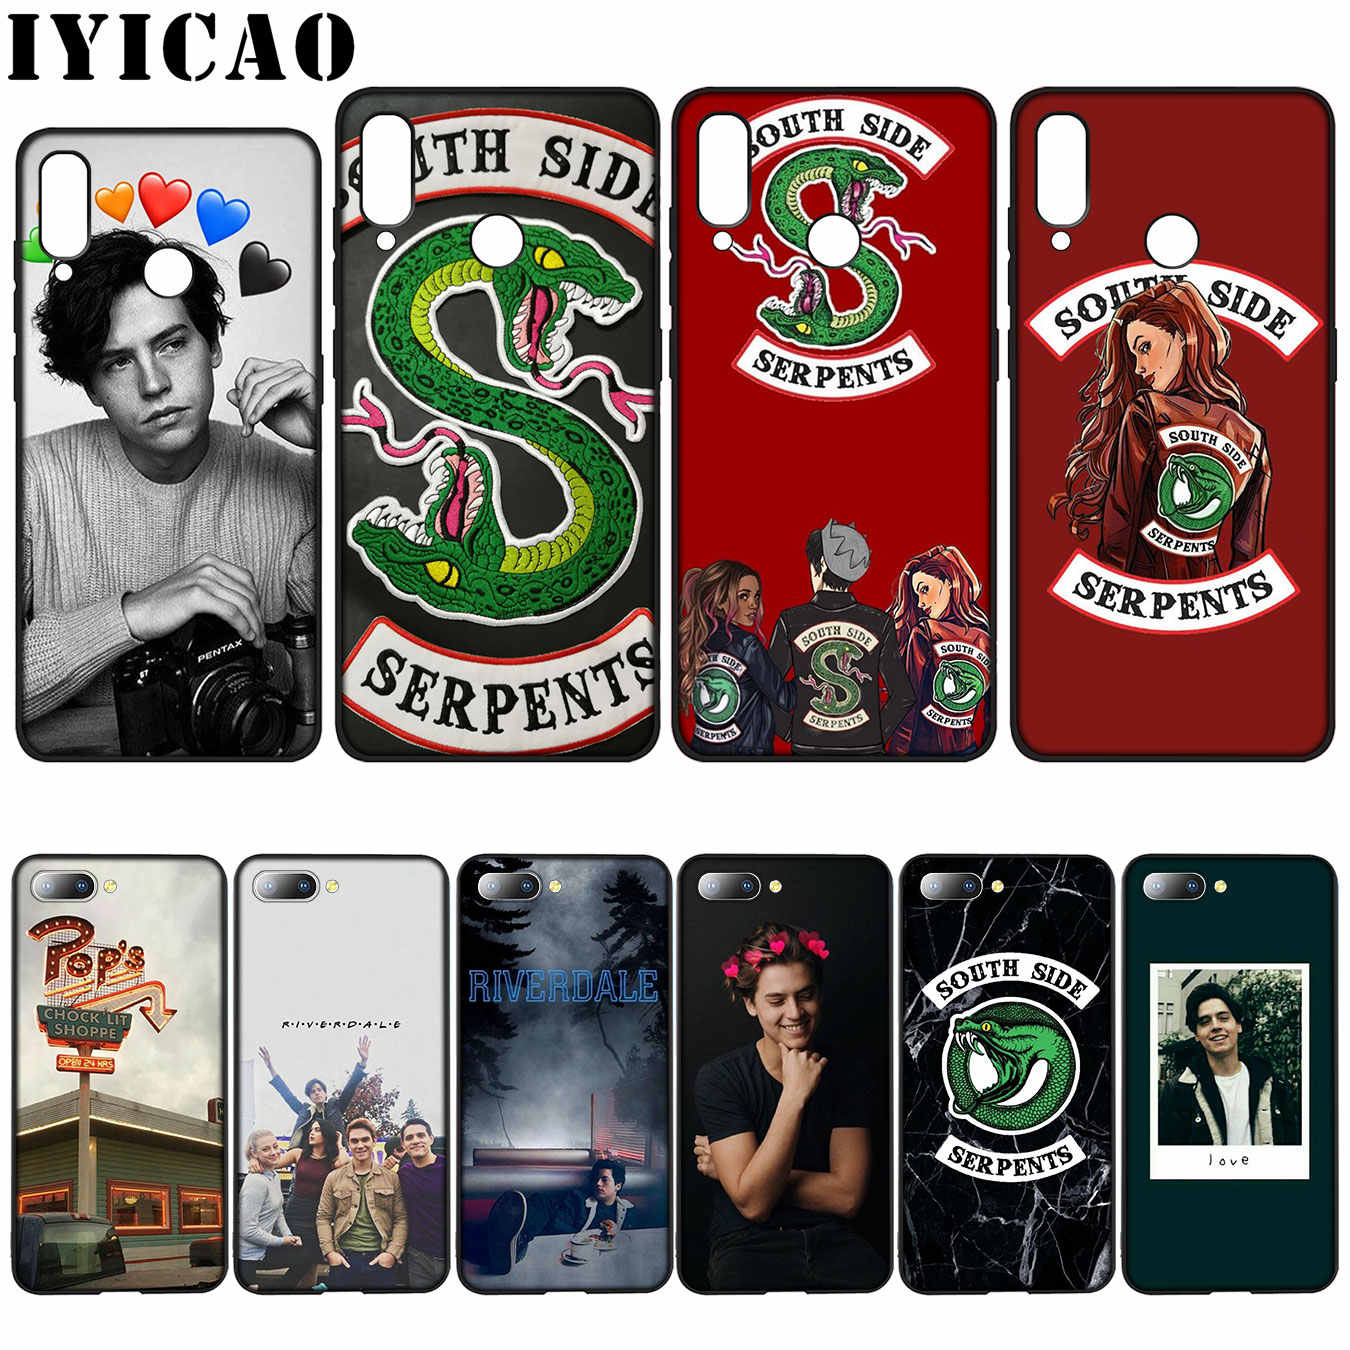 IYICAO Riverdale South Side Snake Cover love Soft Case for Huawei Y7 Y6 Prime Y9 2018 Honor 8C 8X 8 9 10 Lite 6A 7C 7X 7A Pro